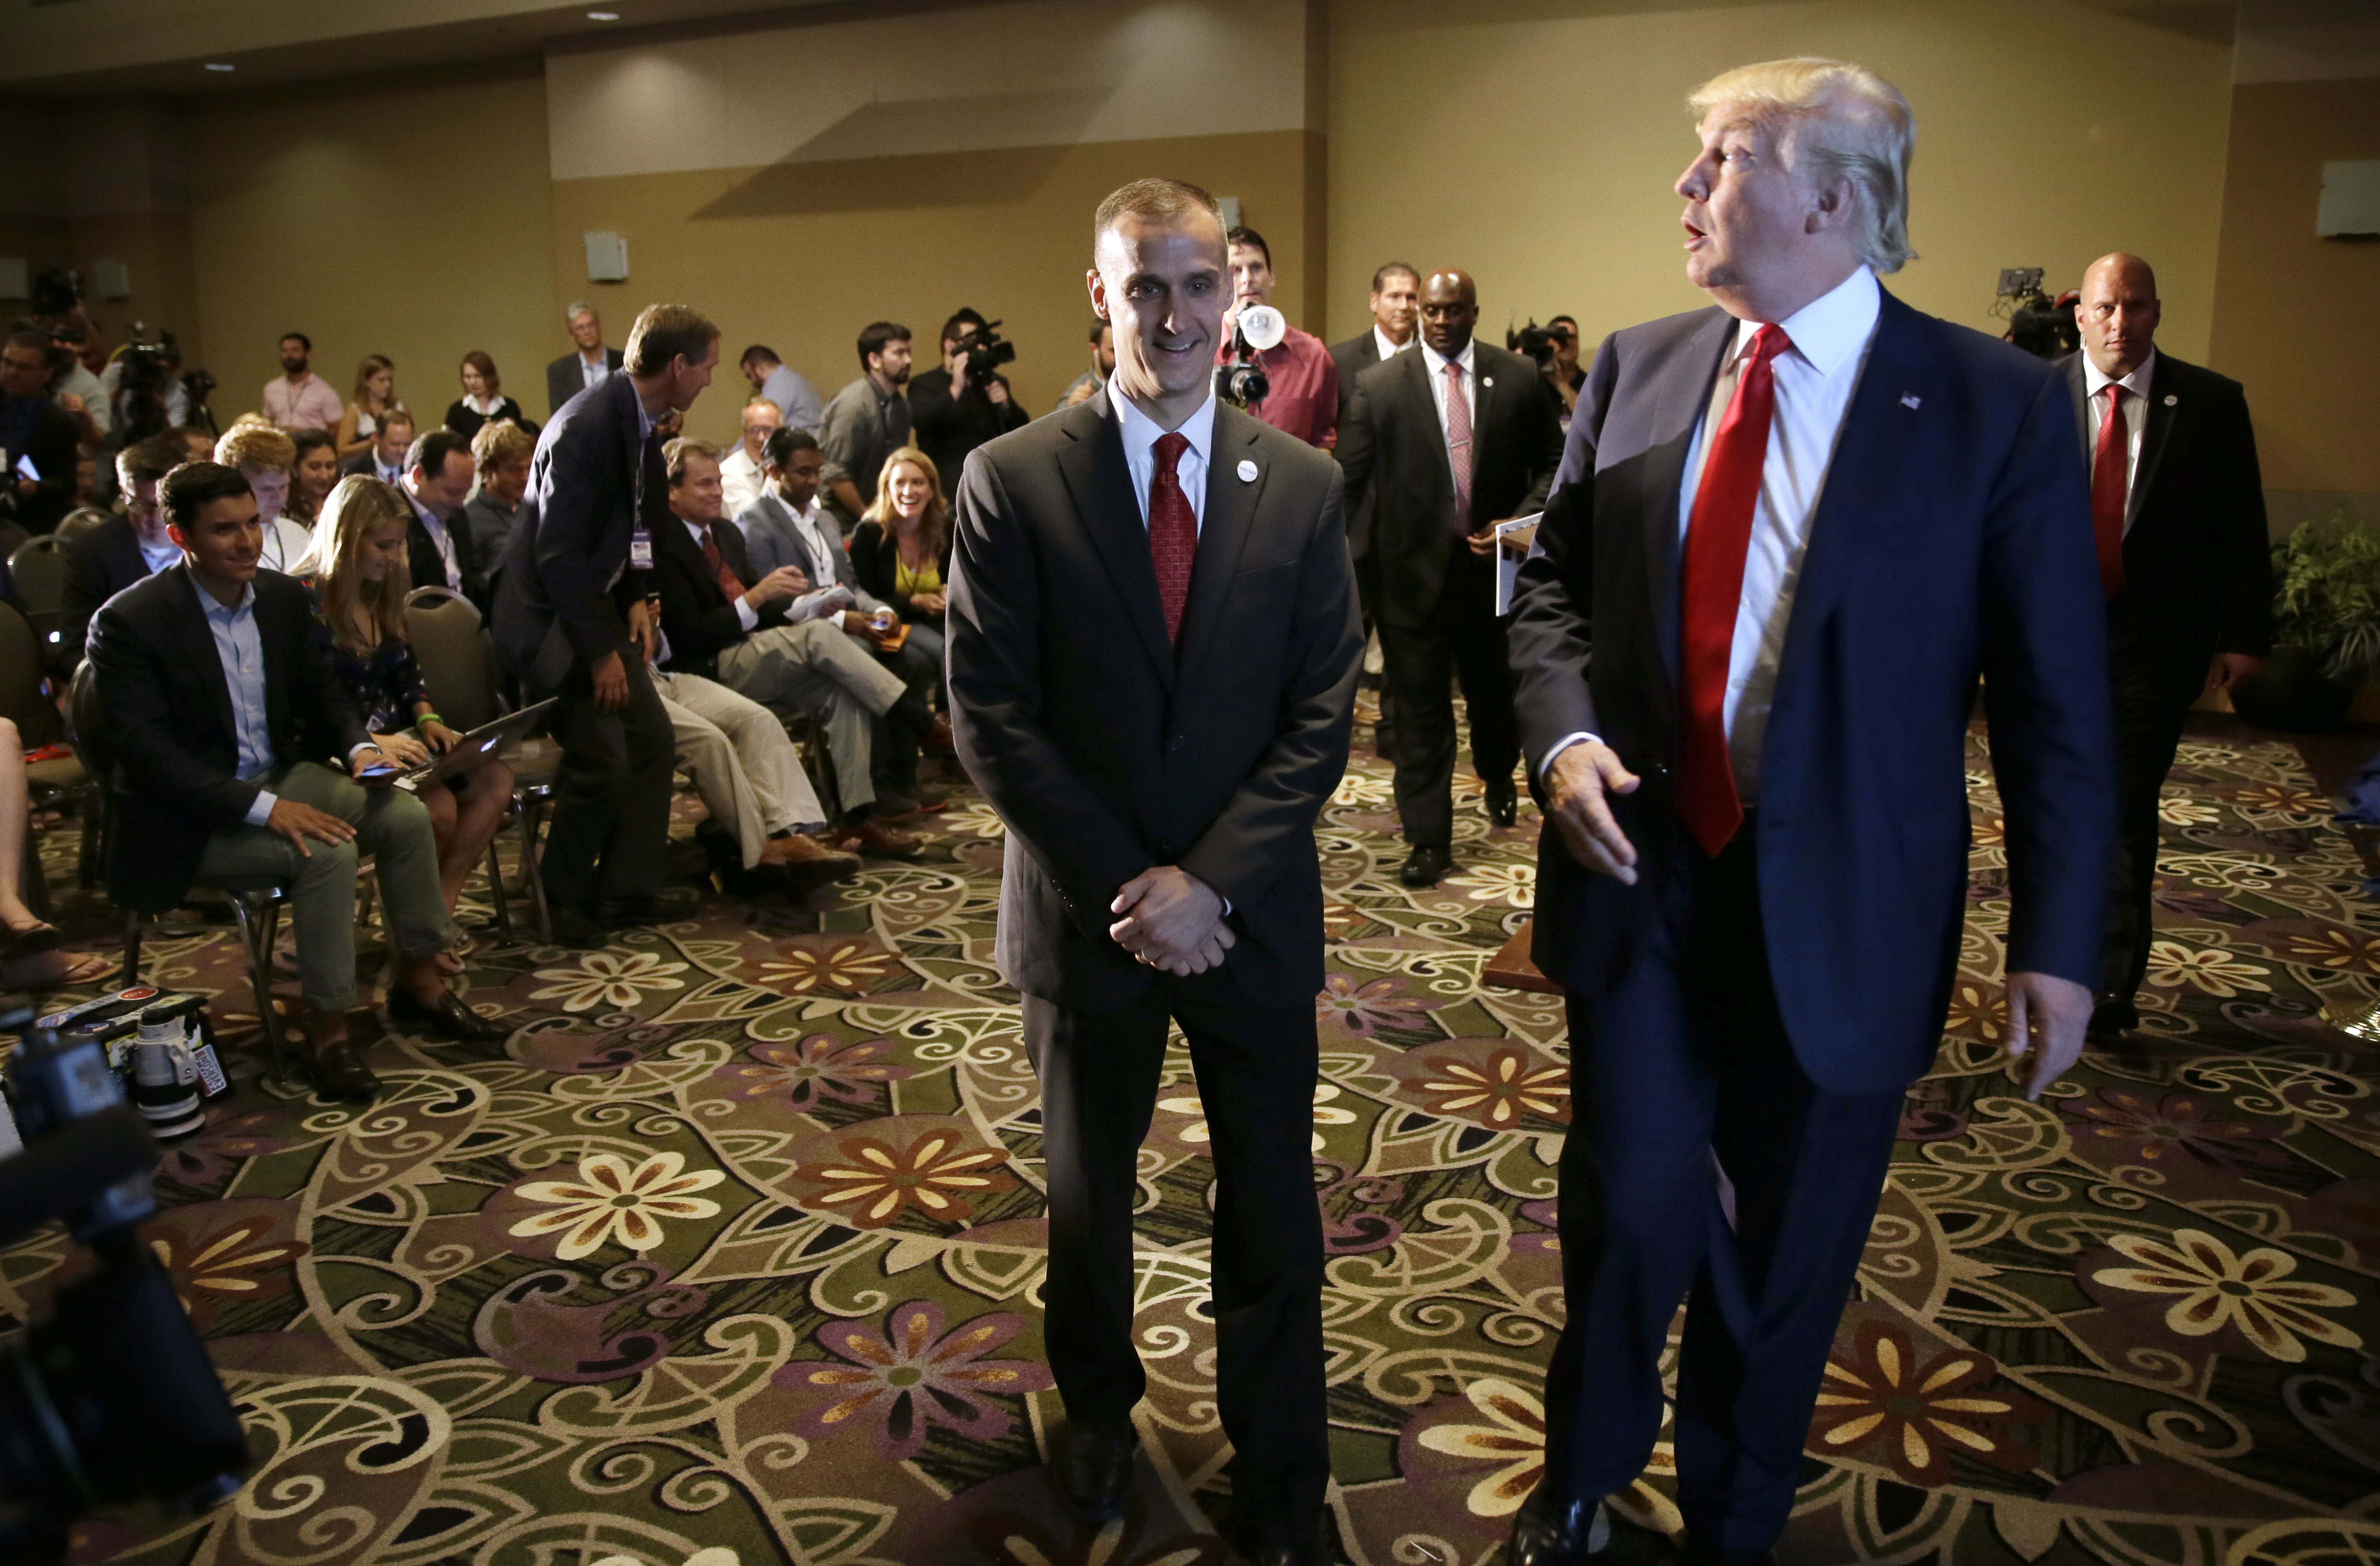 160310-trumplewandowski-editorial.jpg